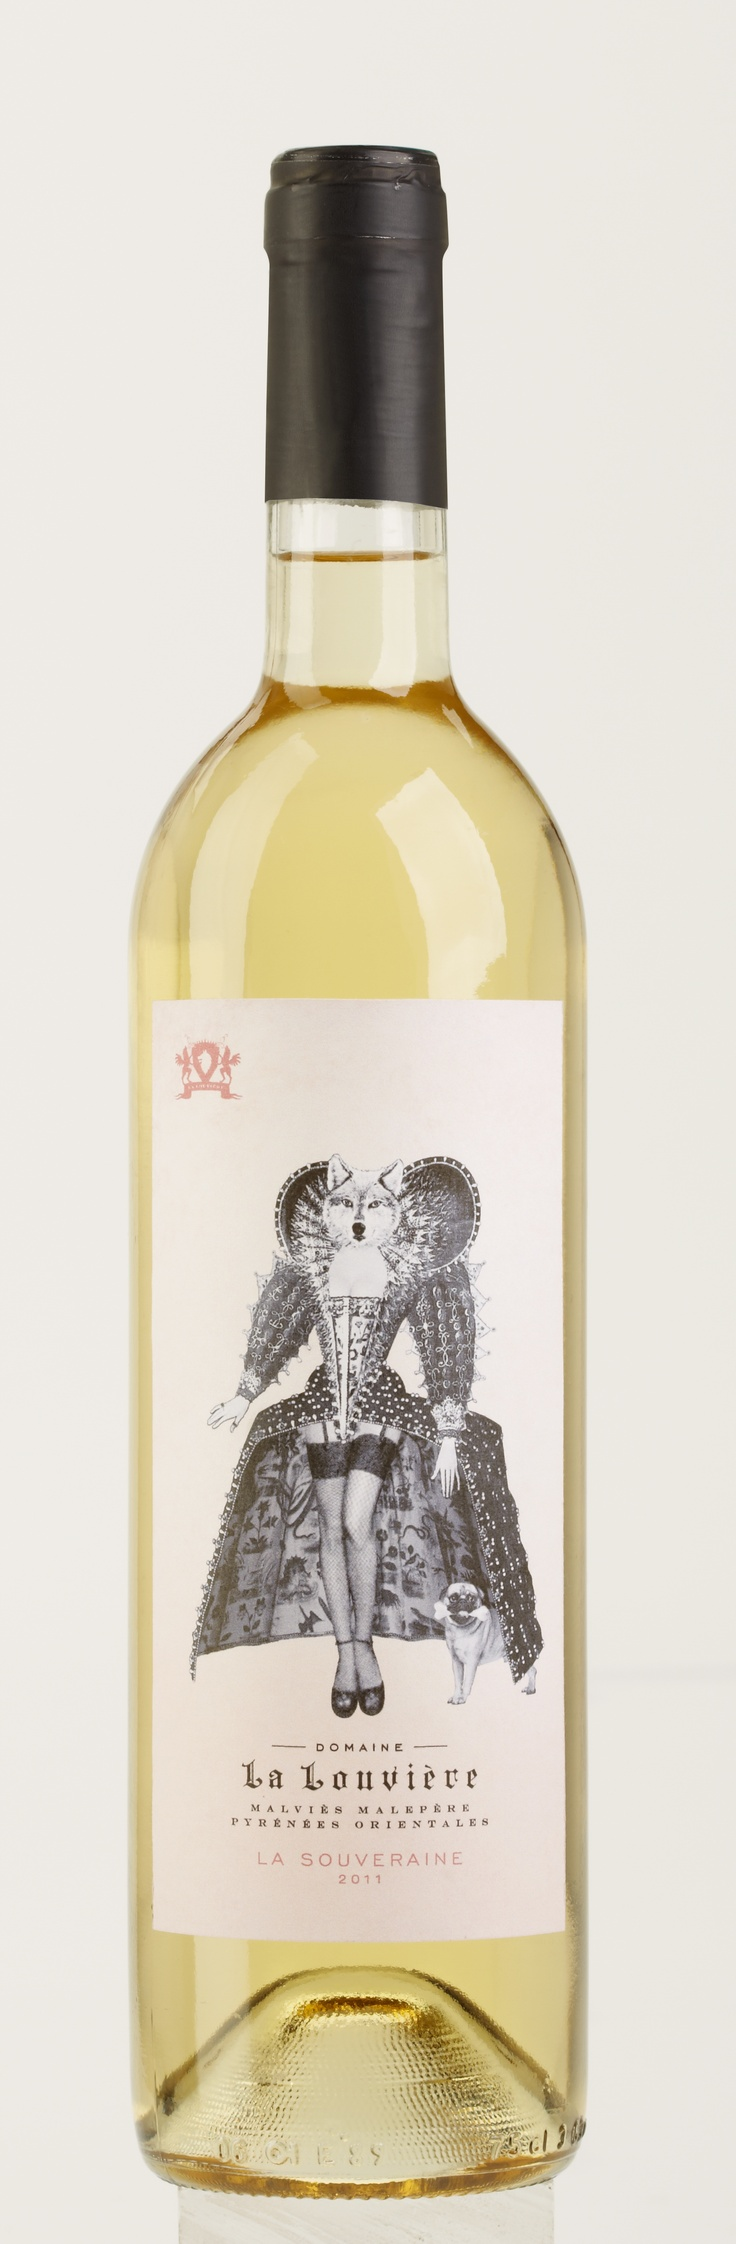 Domaine La Louvière - La Souveraine - a white wine made out of Chardonnay and aged 8 month in oak barrels, presented with a very sexy wine label